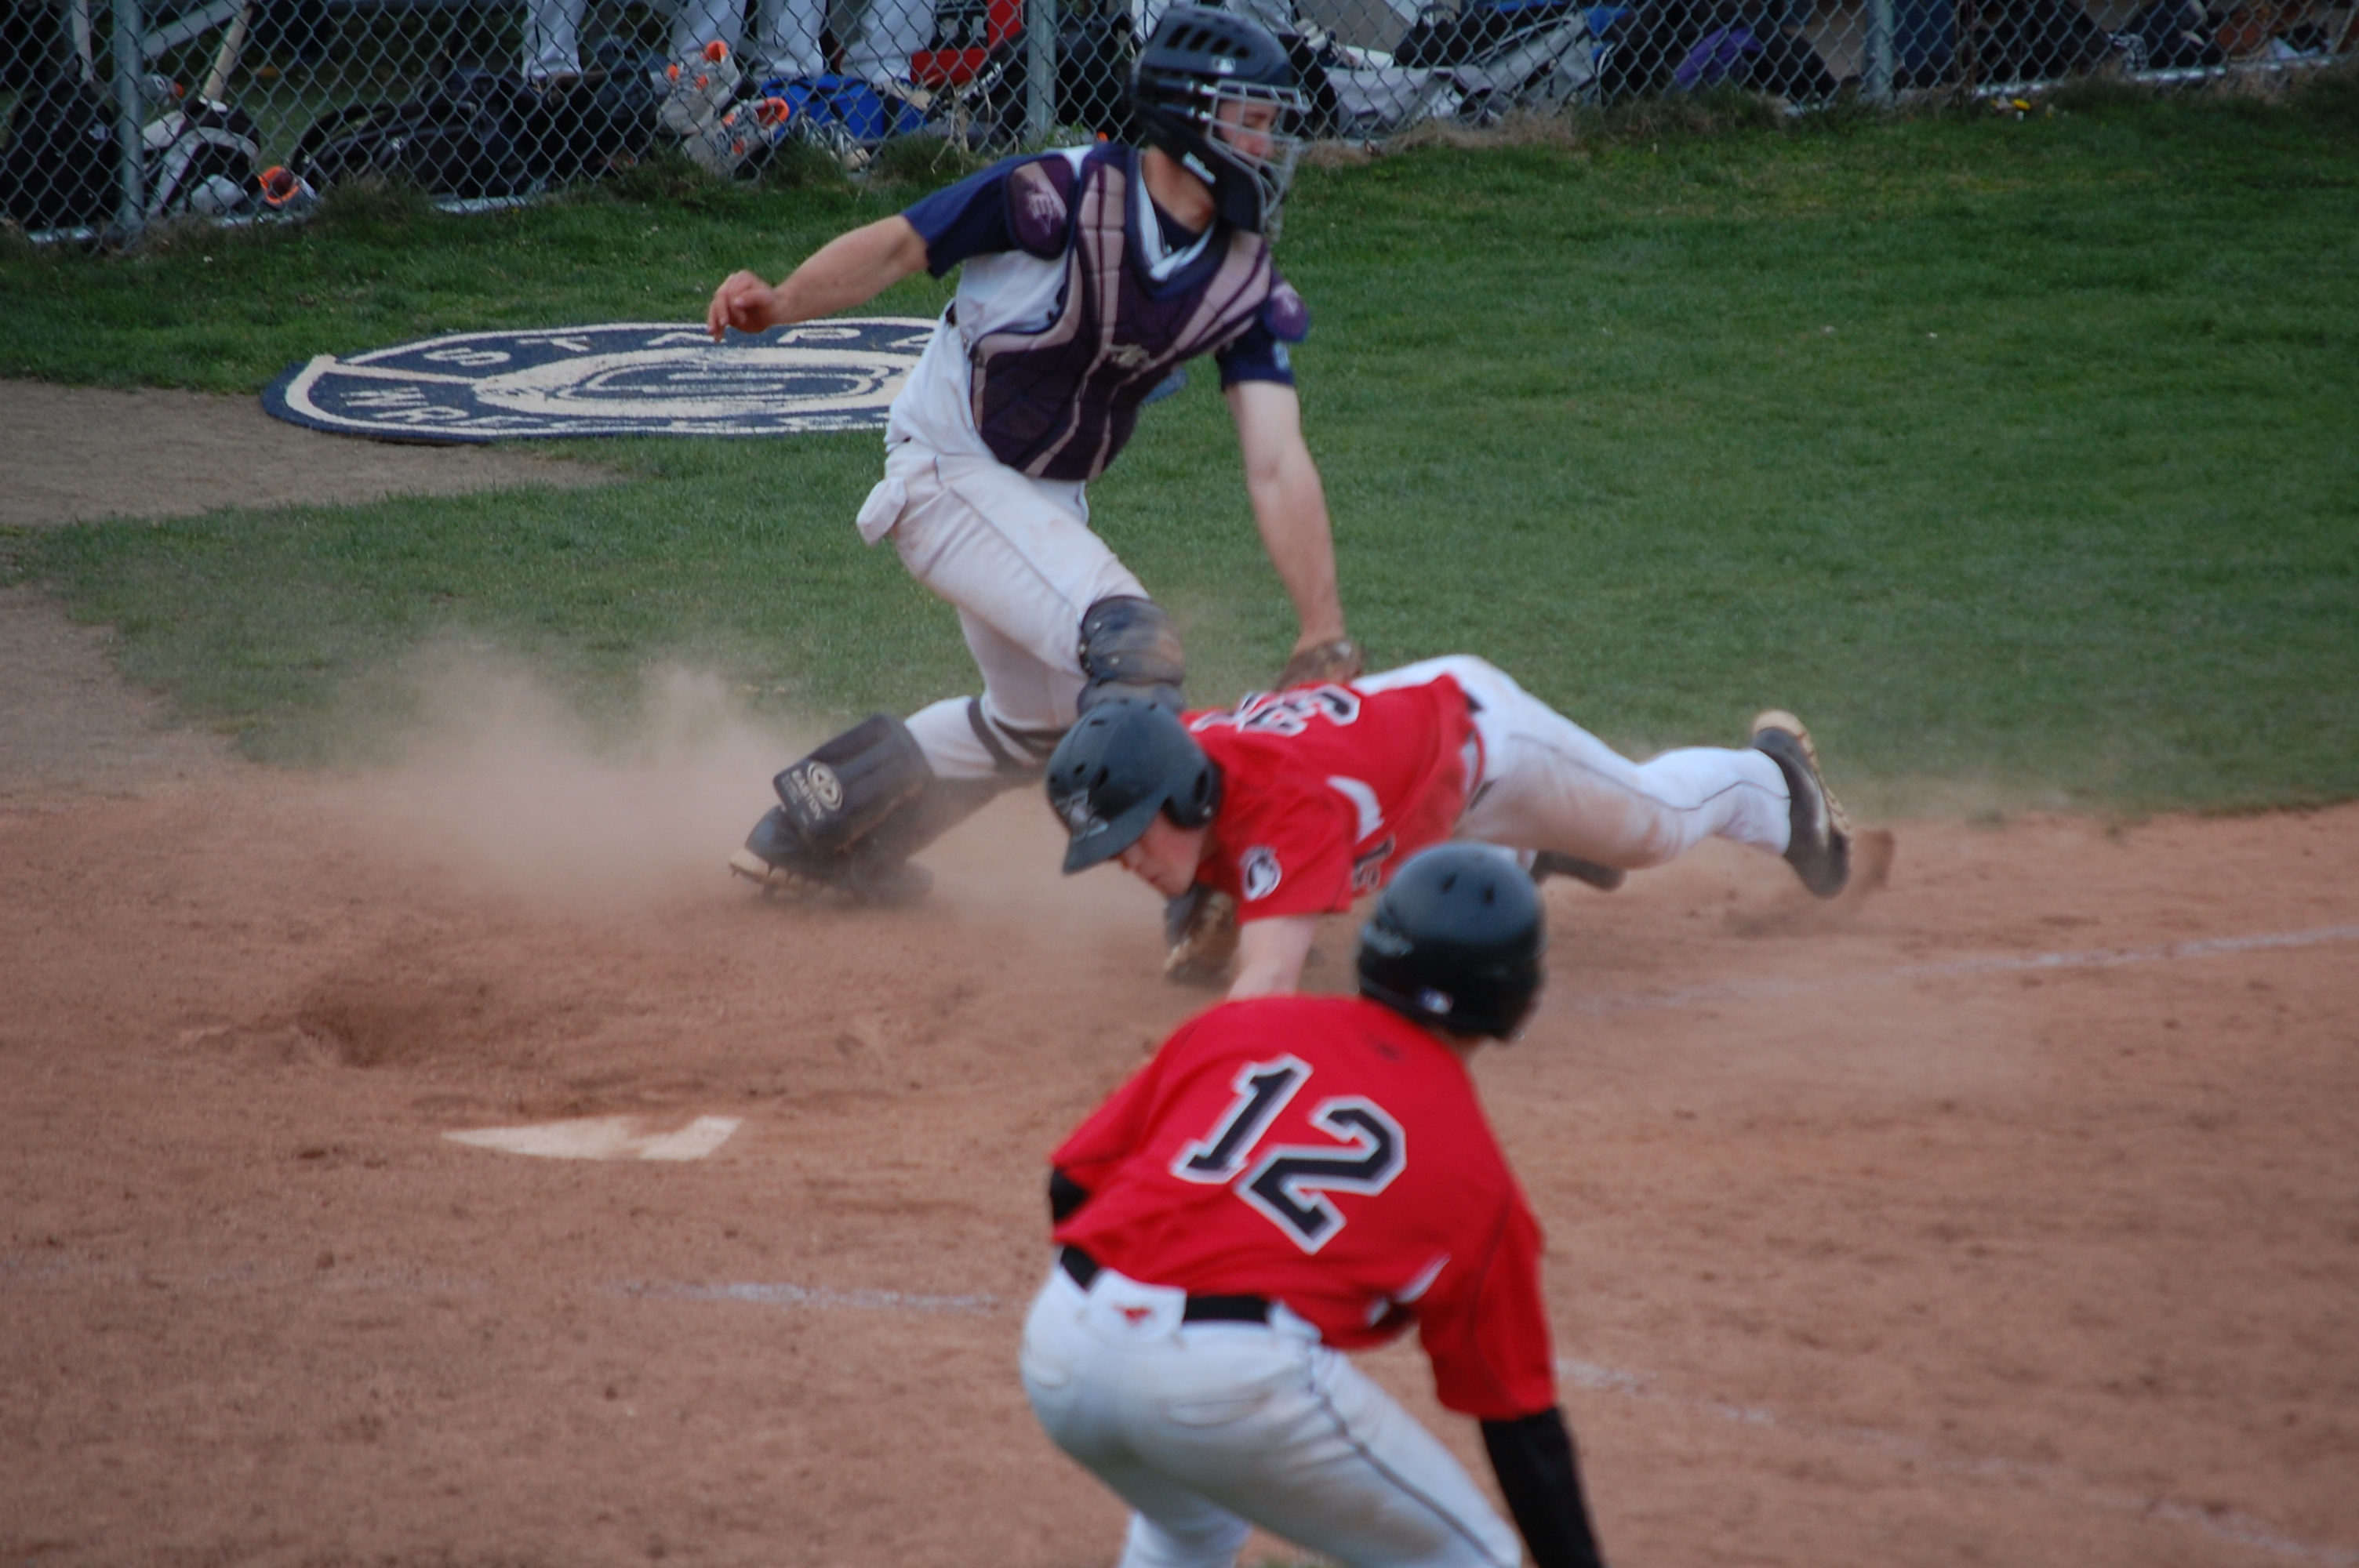 Warde runner gunned down in the 7th!